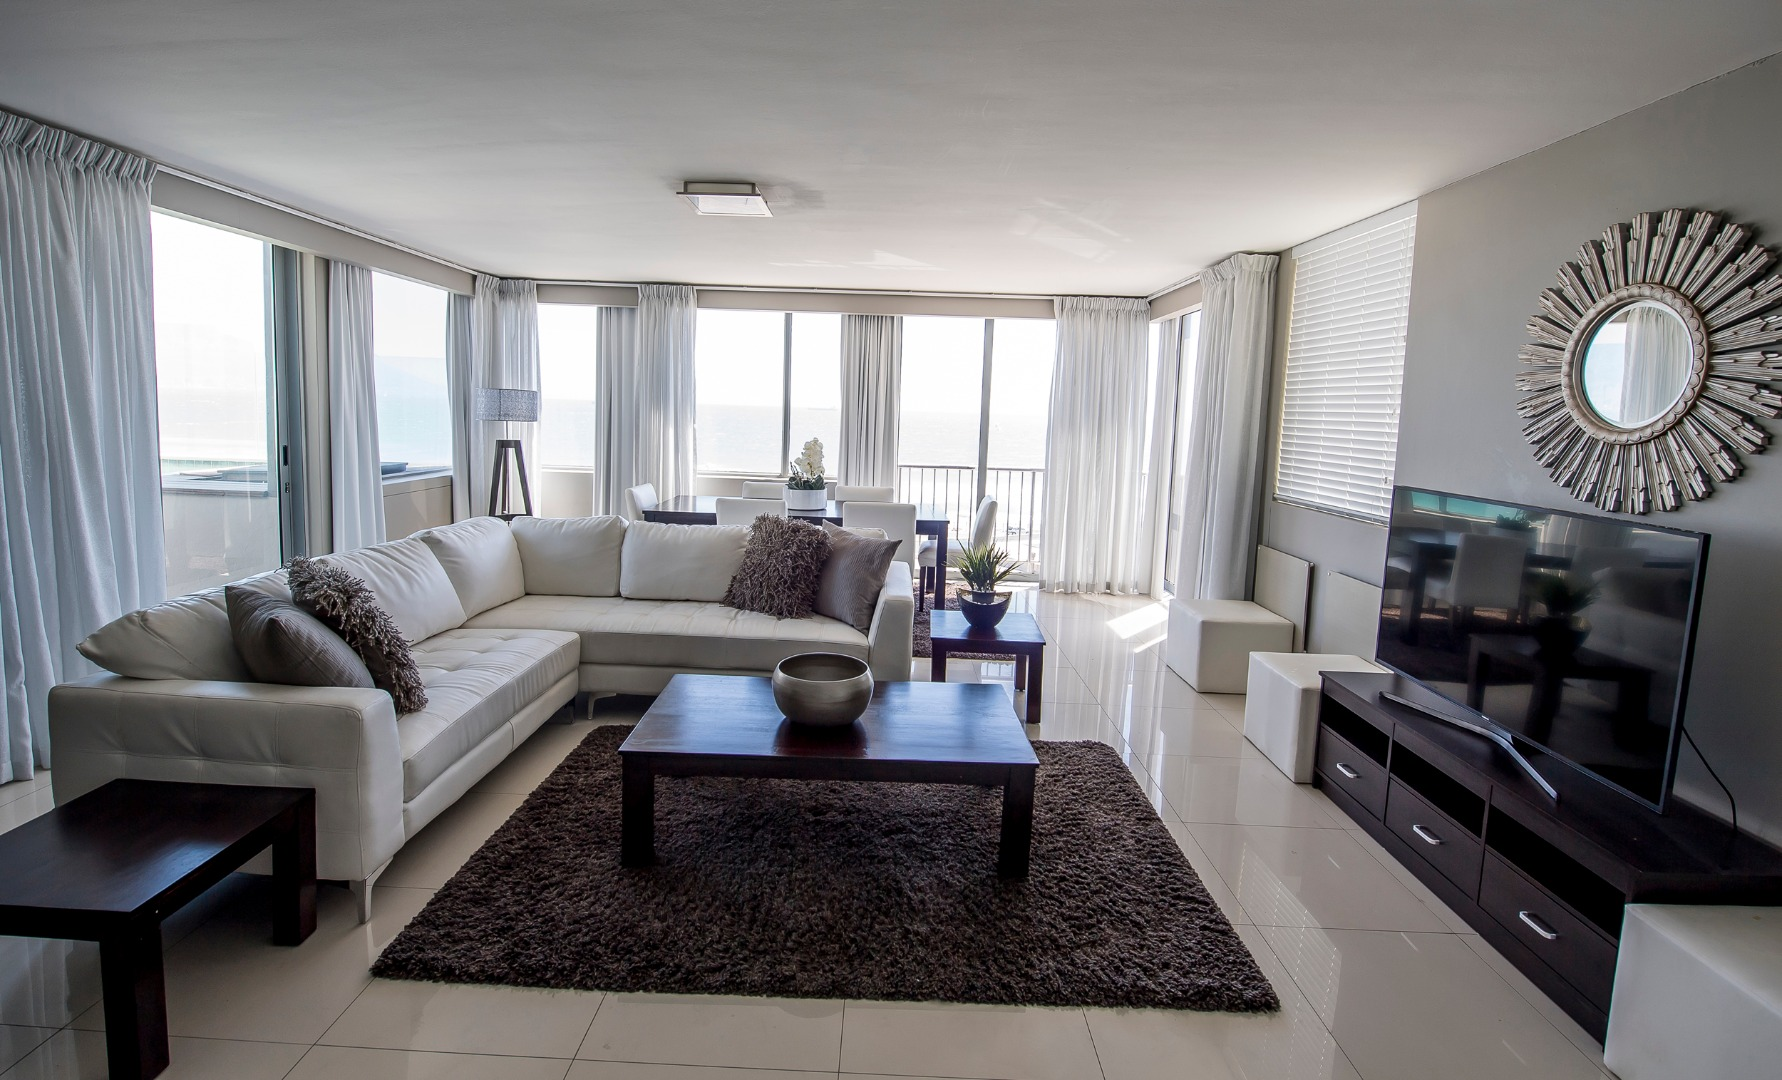 4 Bedroom Apartment / Flat For Sale in Table View